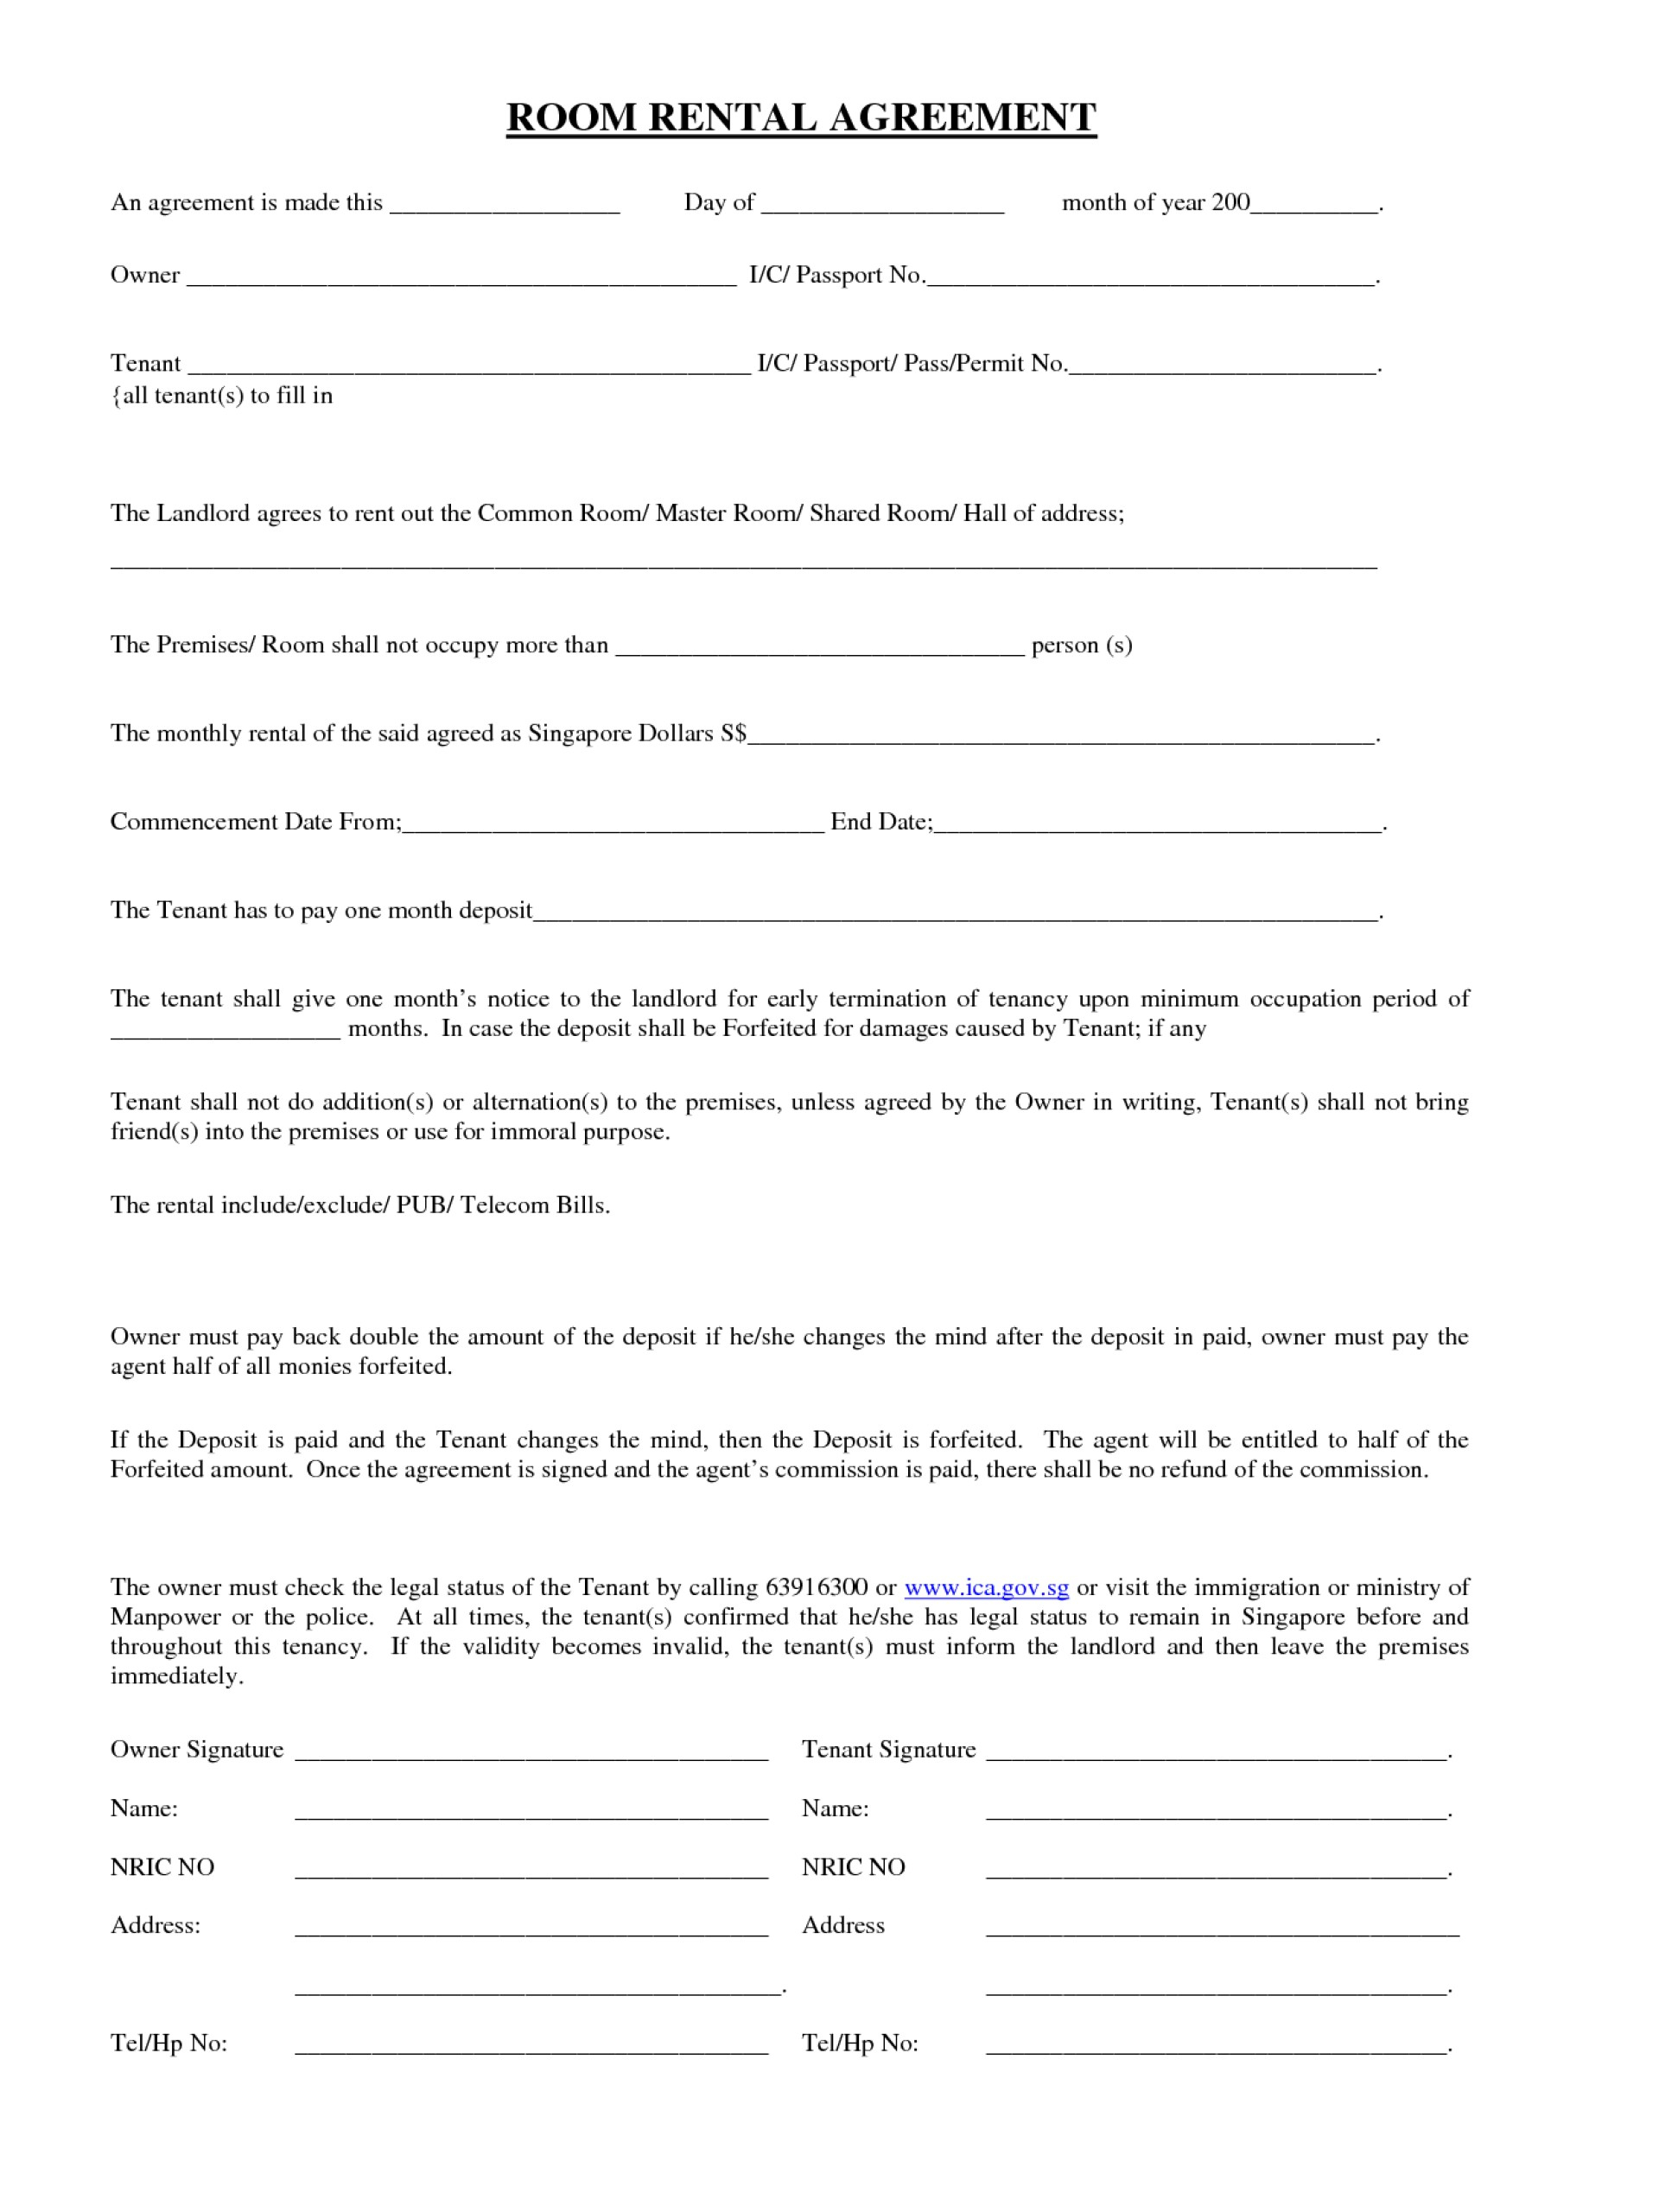 Oklahoma Lease Agreement 006 House Rental Contract Template Homee Agreement Forms Washington